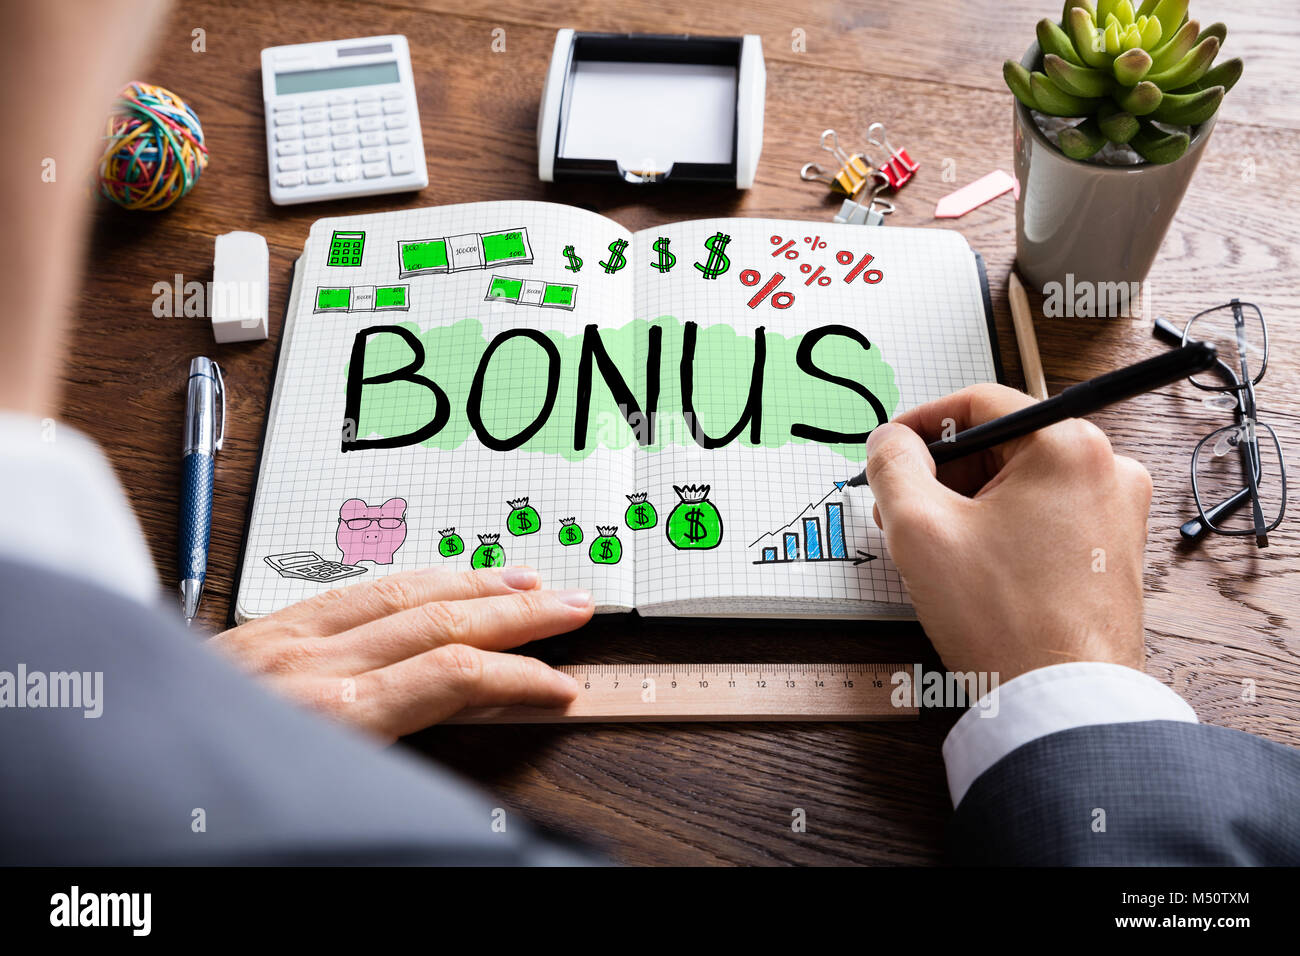 Man Drawing Bonus And Employee Compensation Concept - Stock Image